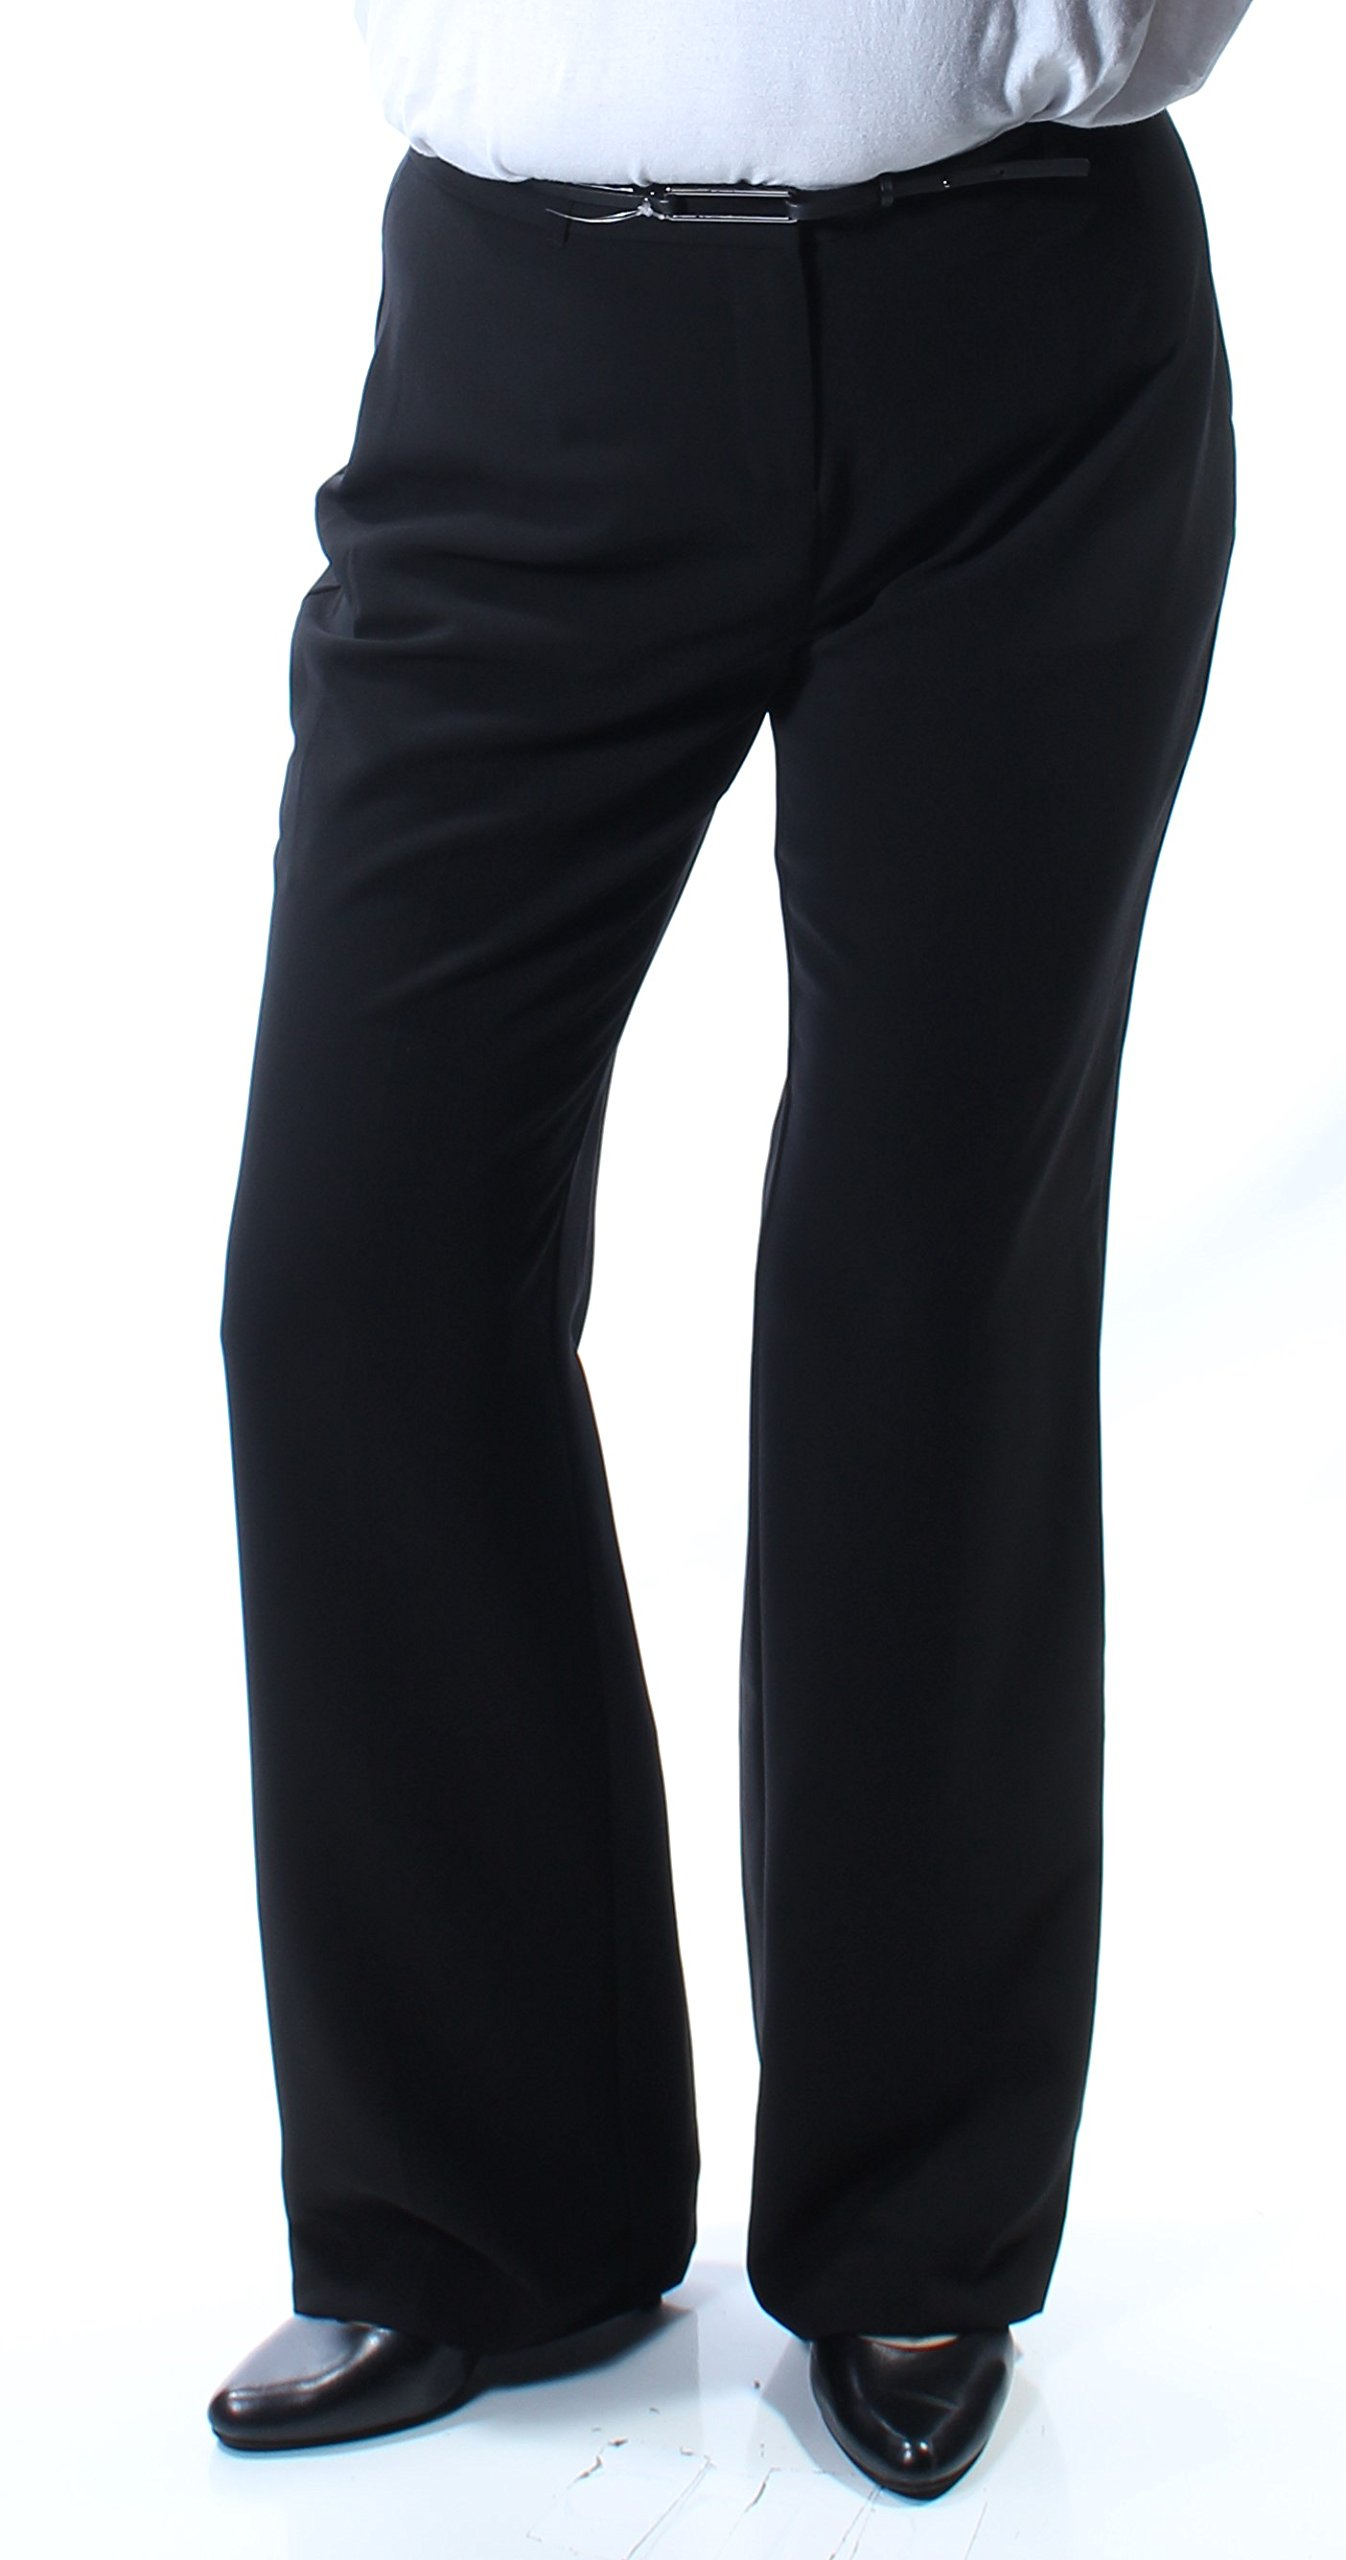 Style & Company Womens New 7322 Black Belted Boot Cut Wear to Work Pants 10 B+B